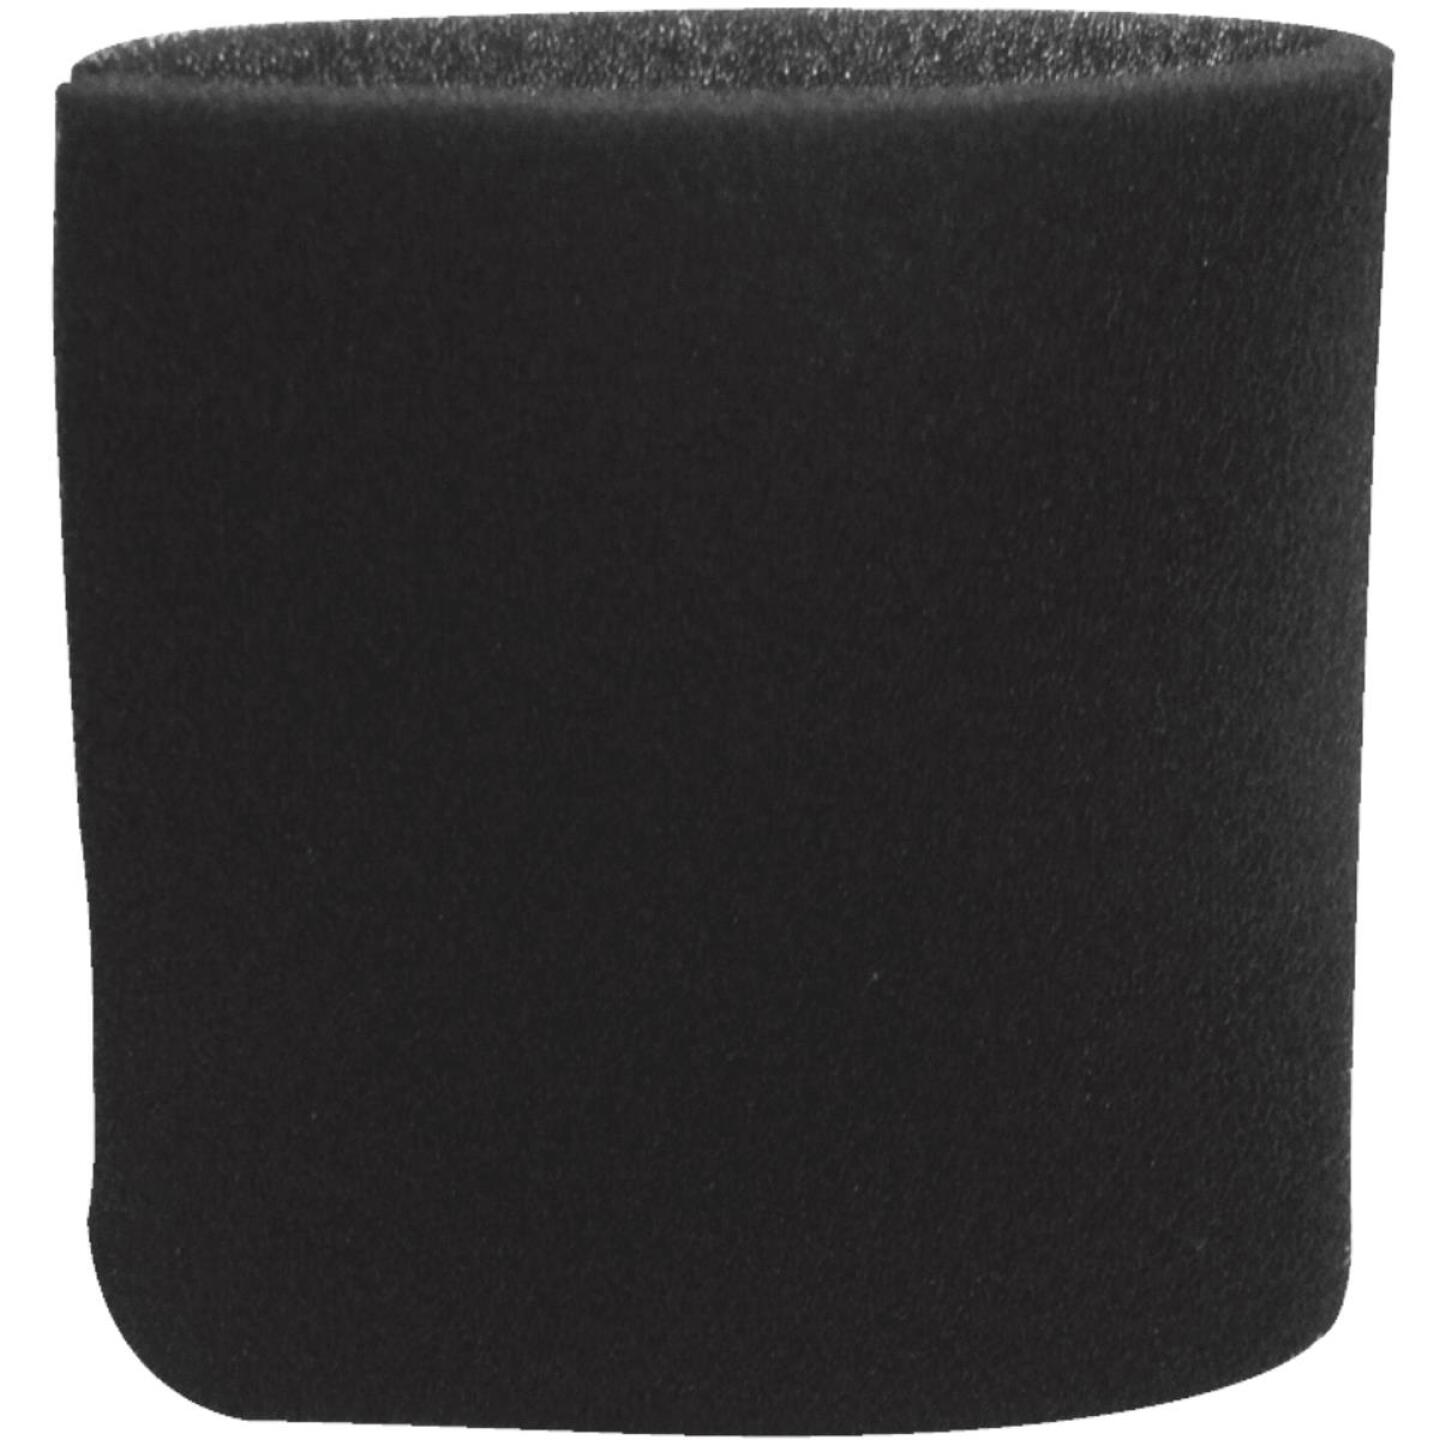 Channellock Foam Standard 2-1/2 to 4 Gal. Wet/Dry Vacuum Filter Image 1